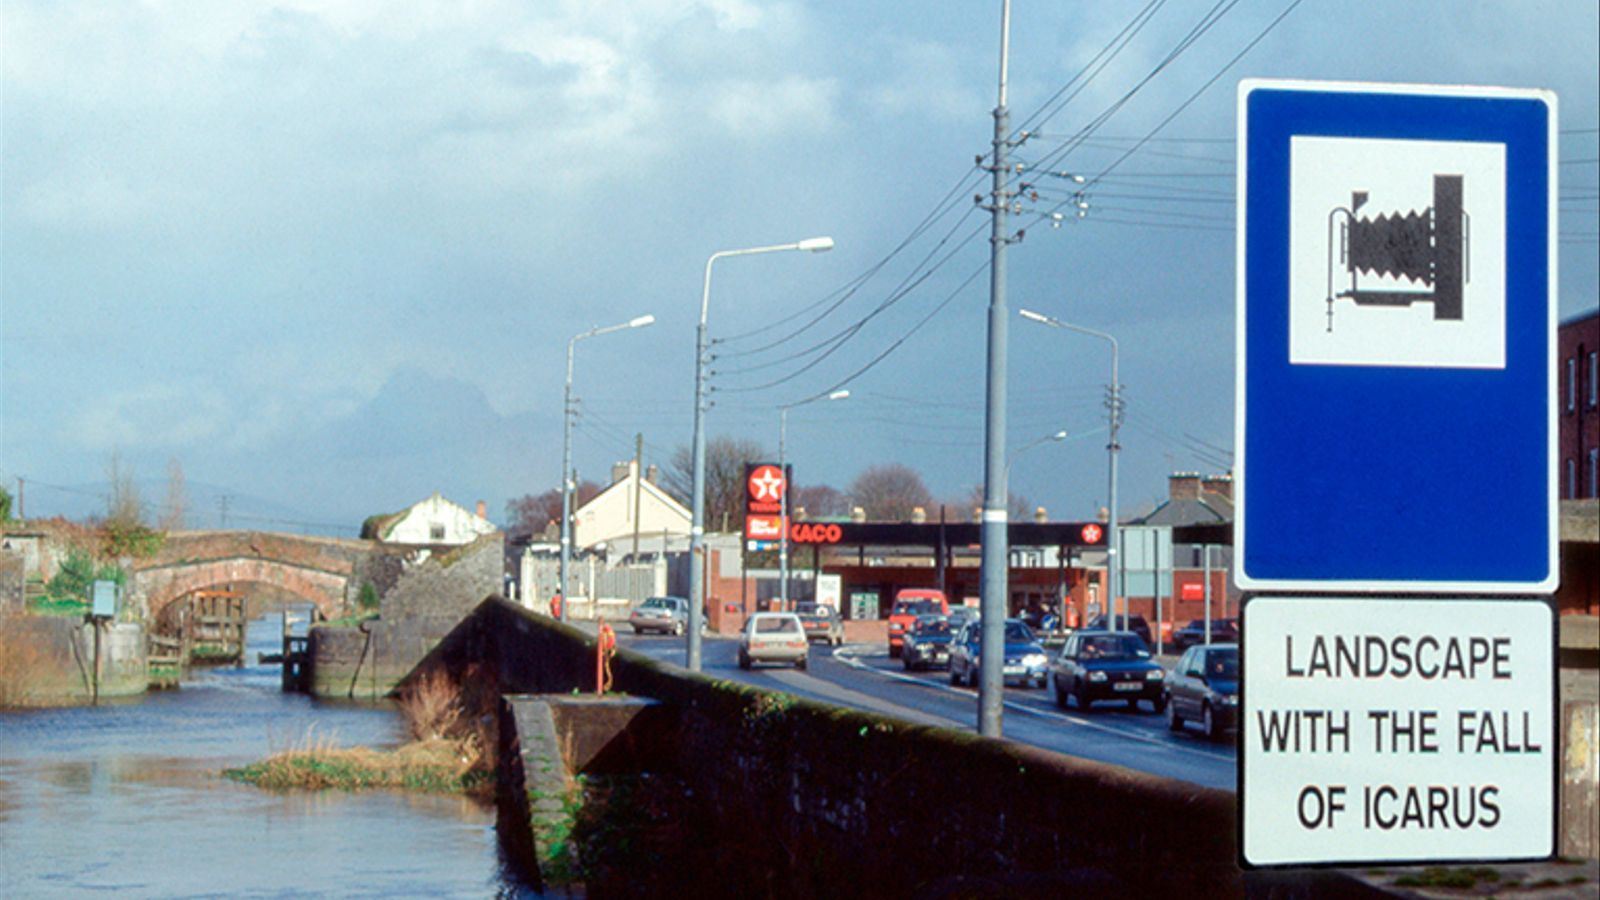 Landscape with the fall of Icarus de Rogelio López Cuenca